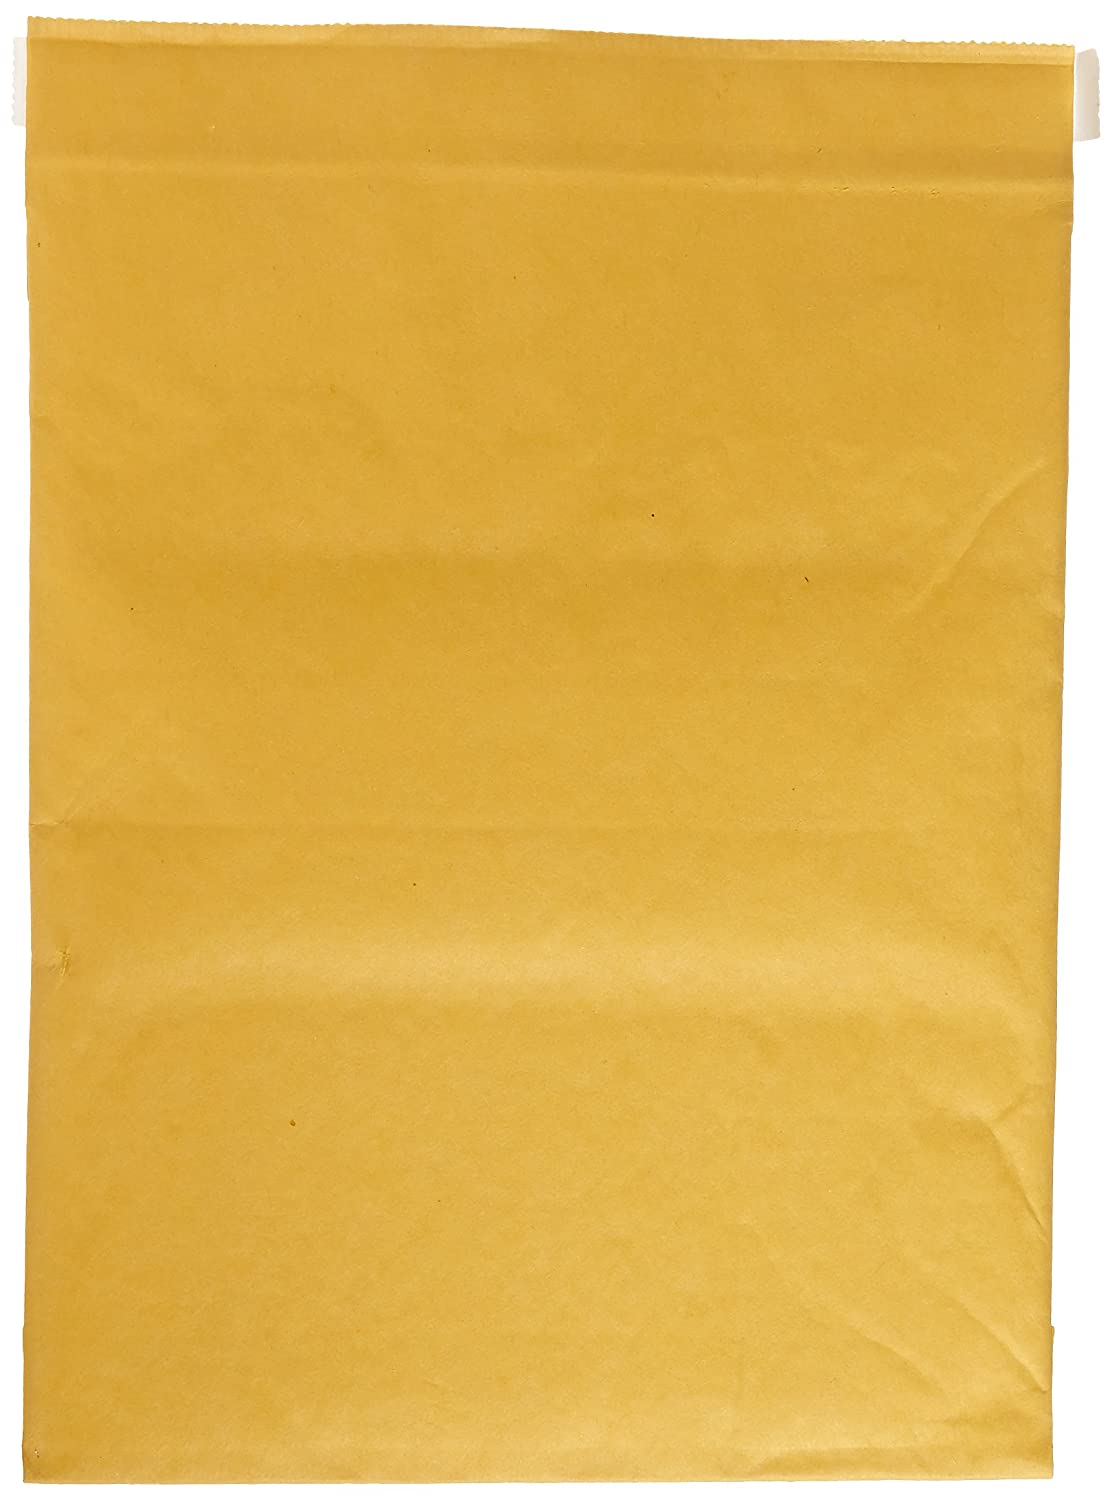 "Hot Aviditi B805SS25PK Fiber #2 Self-Seal Padded Mailer, 12"" Length x 8-1/2"" Width, Kraft (Case of 25) free shipping"